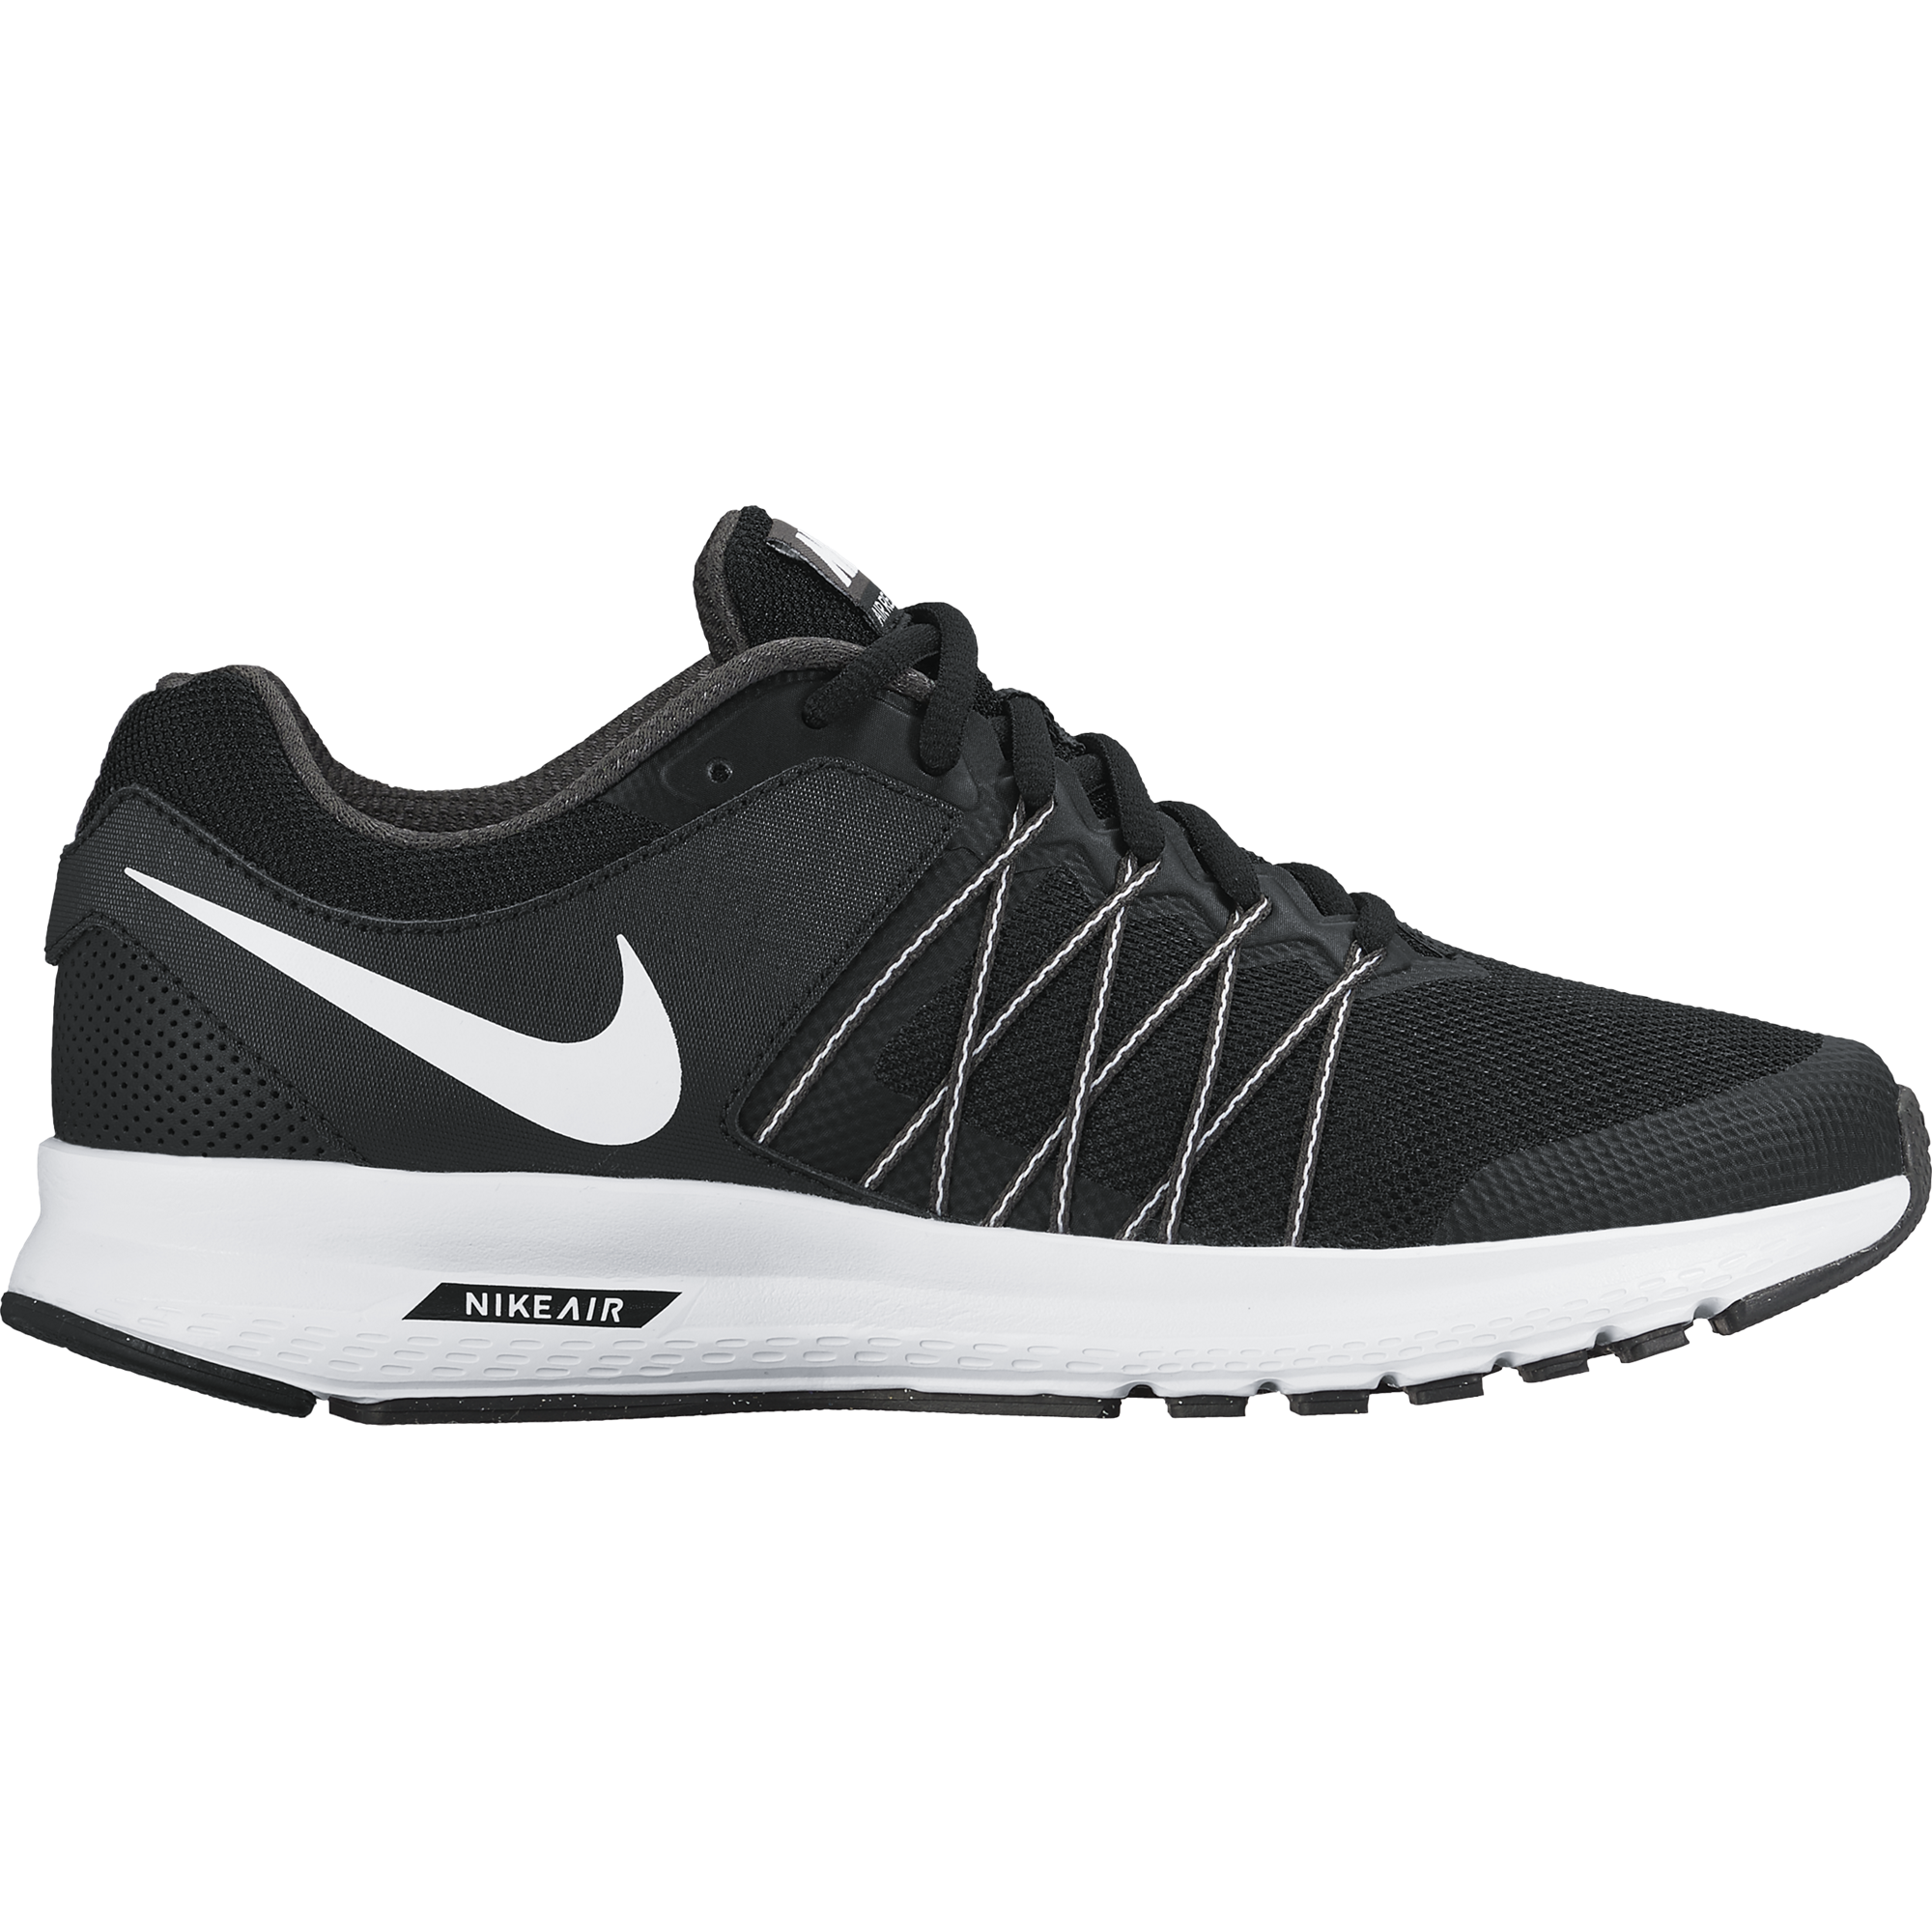 nike womens relentless running pants All items are on sale. 845b832a6